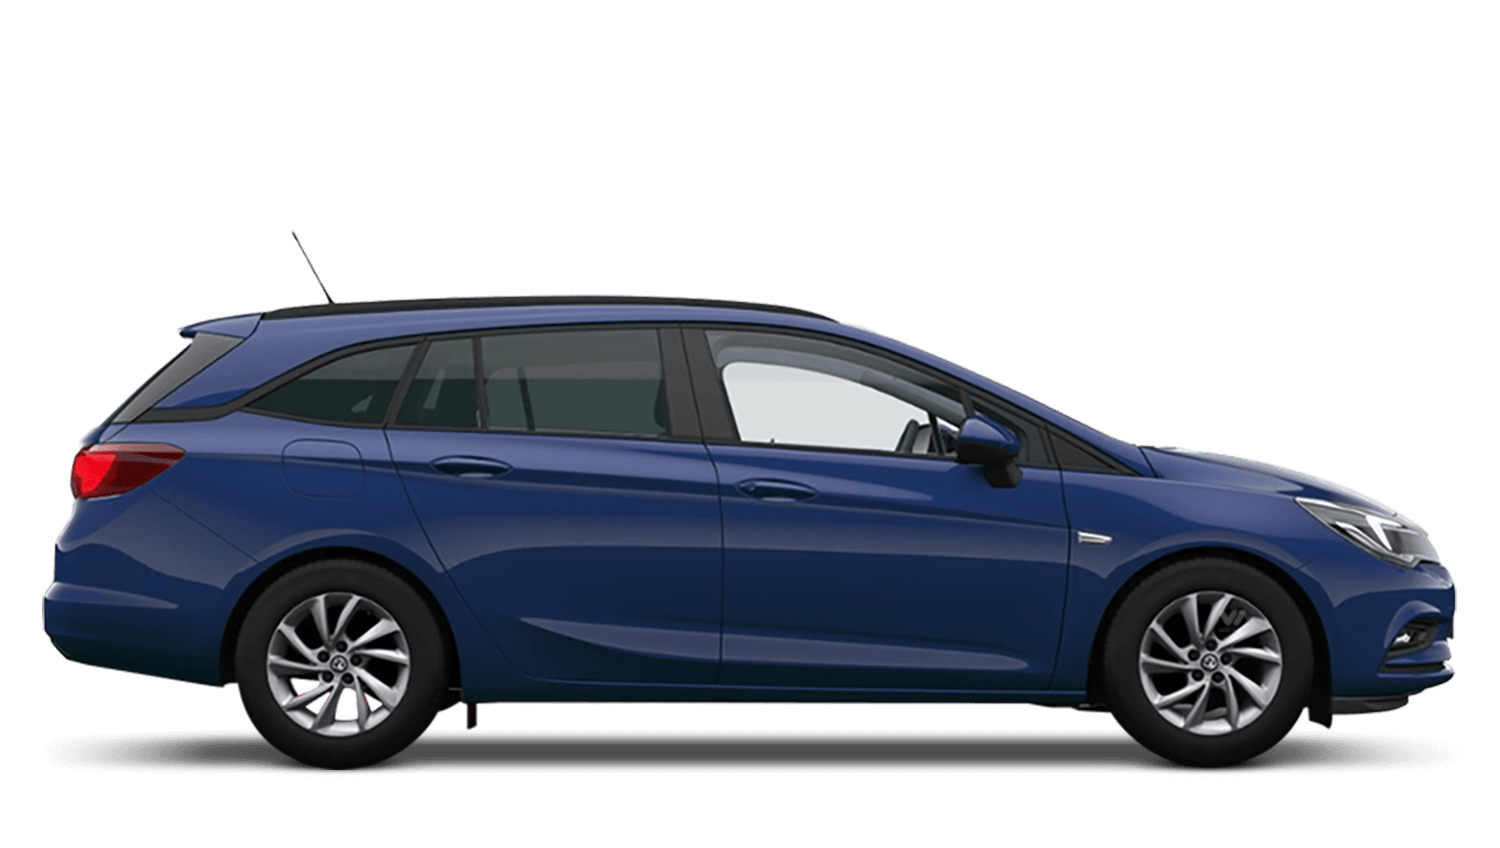 Aegean Blue (Solid) Vauxhall Astra Sports Tourer